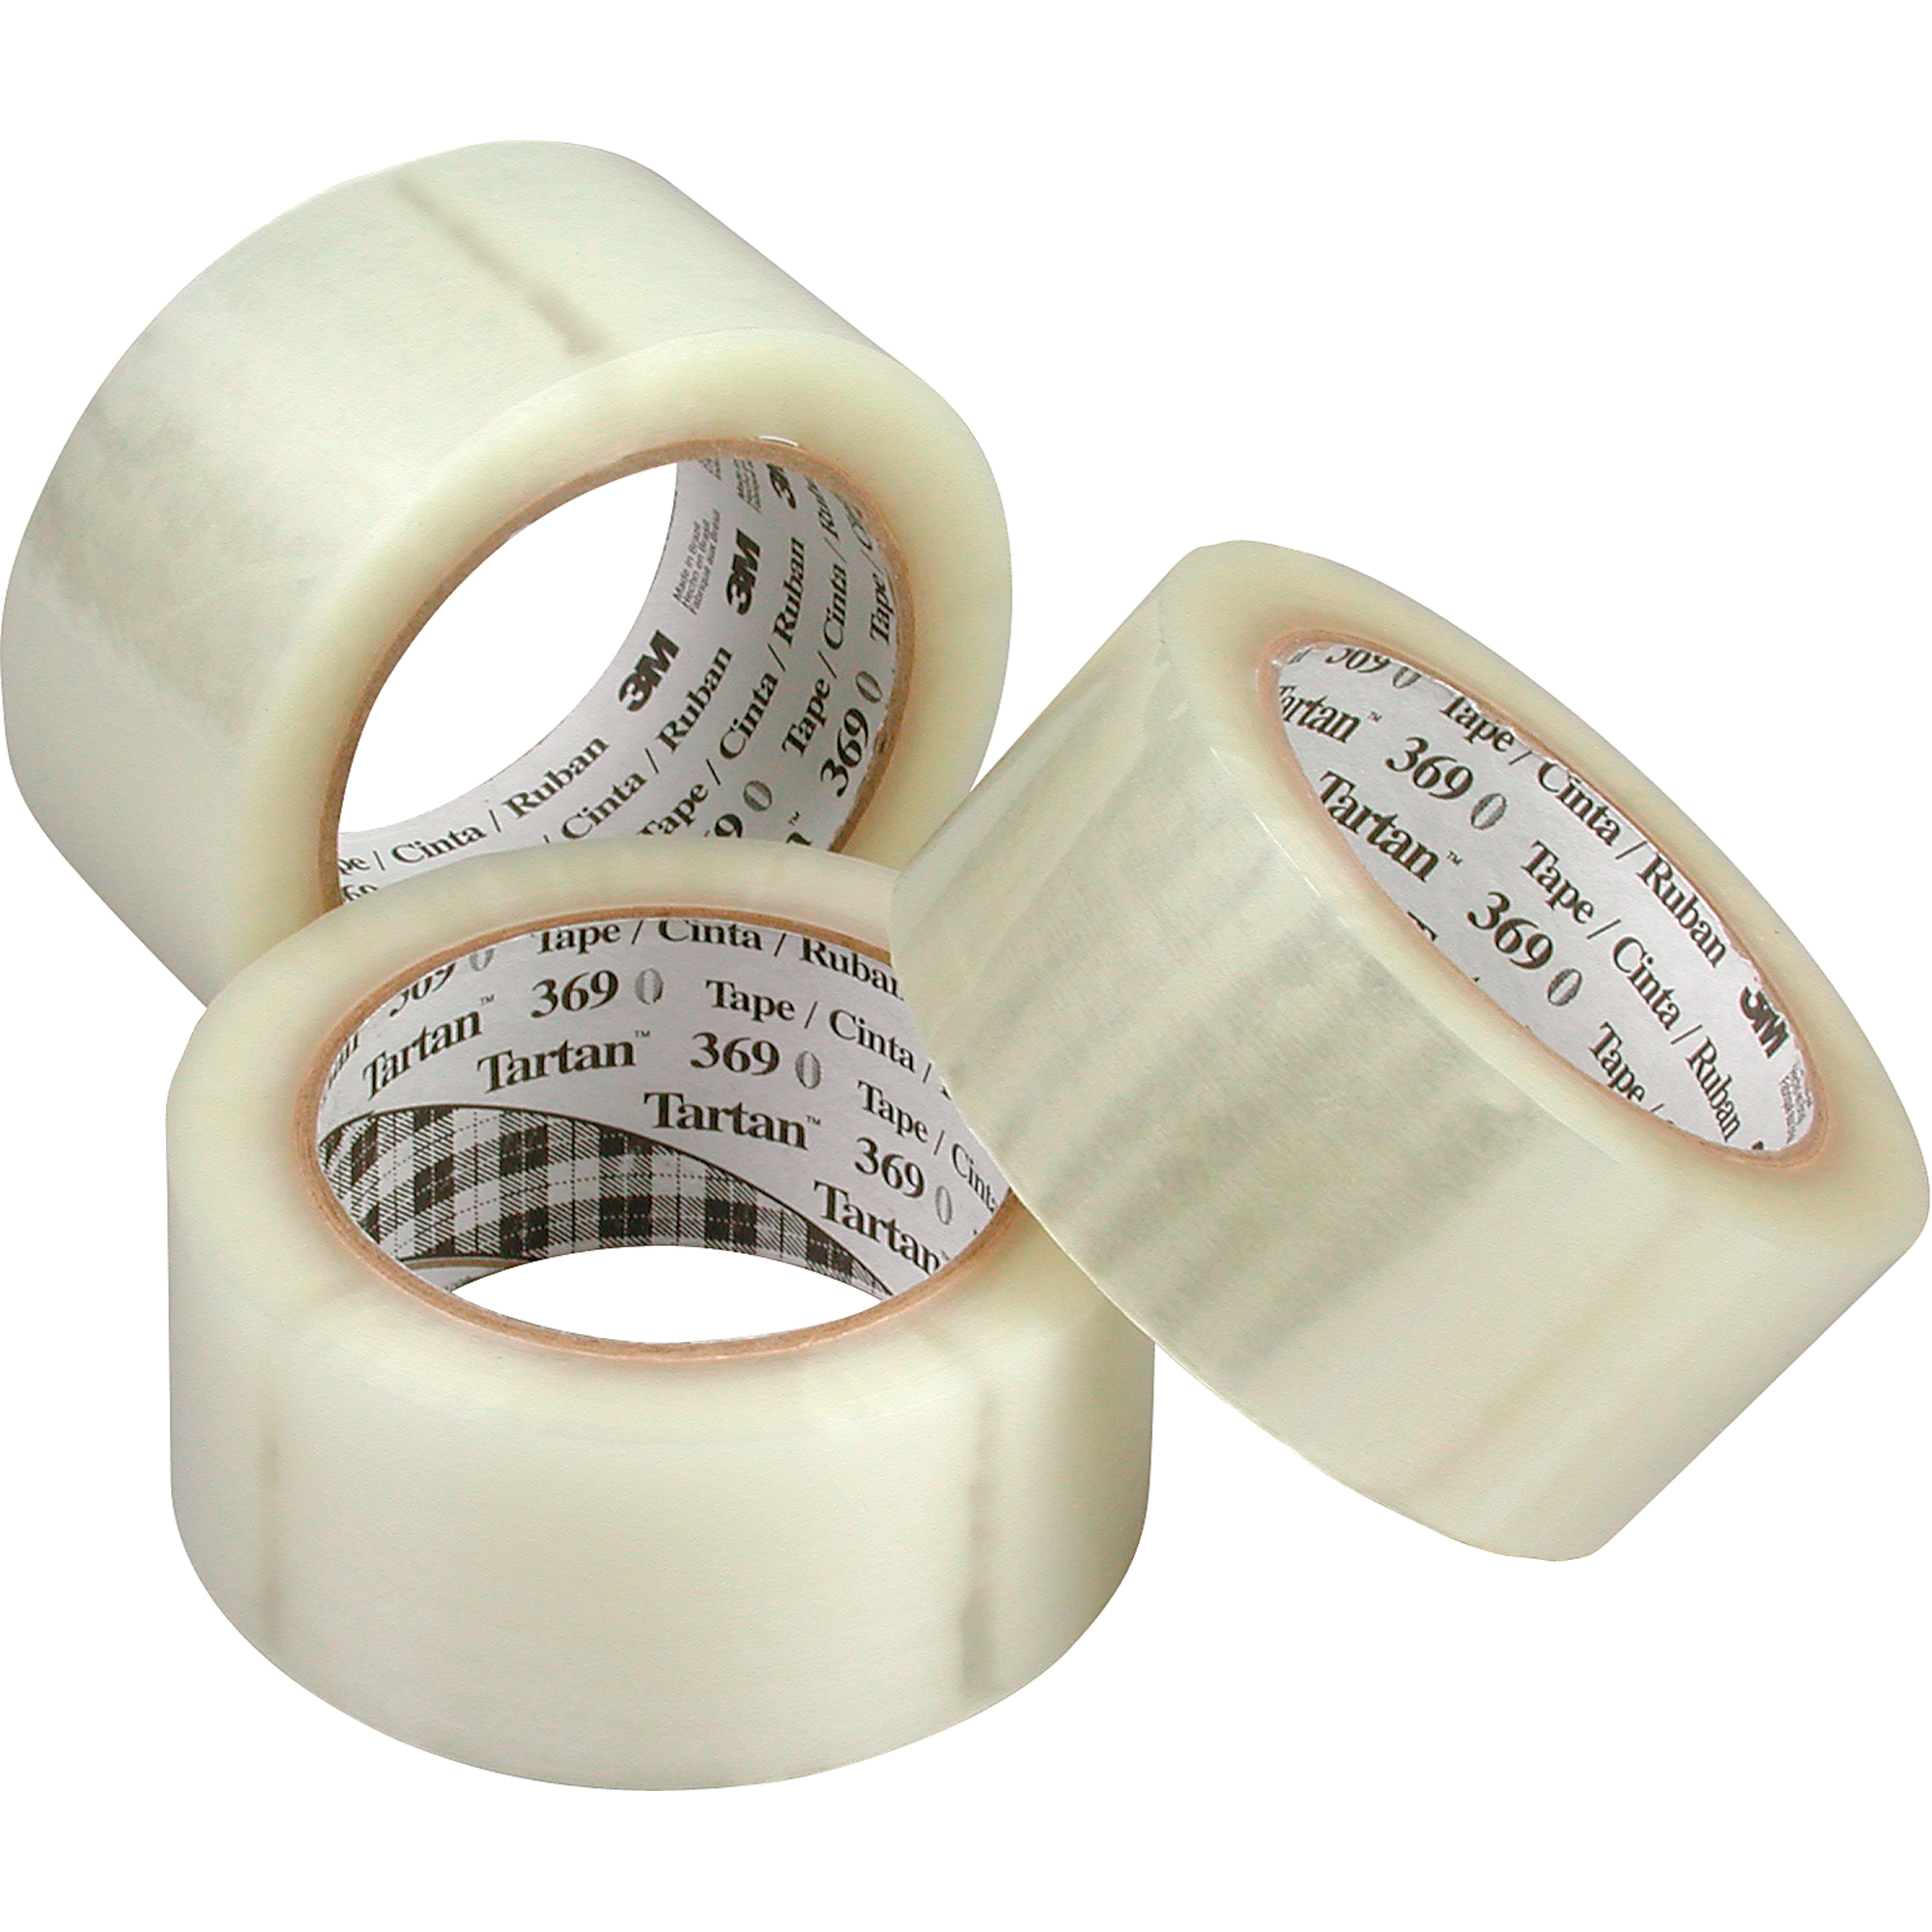 "3M Acrylic Adhesive Tartan 369 Box Sealing Tape, 1.6 mils, 48 mm (1-22/25"") x 100 m (328'), 1 Count"